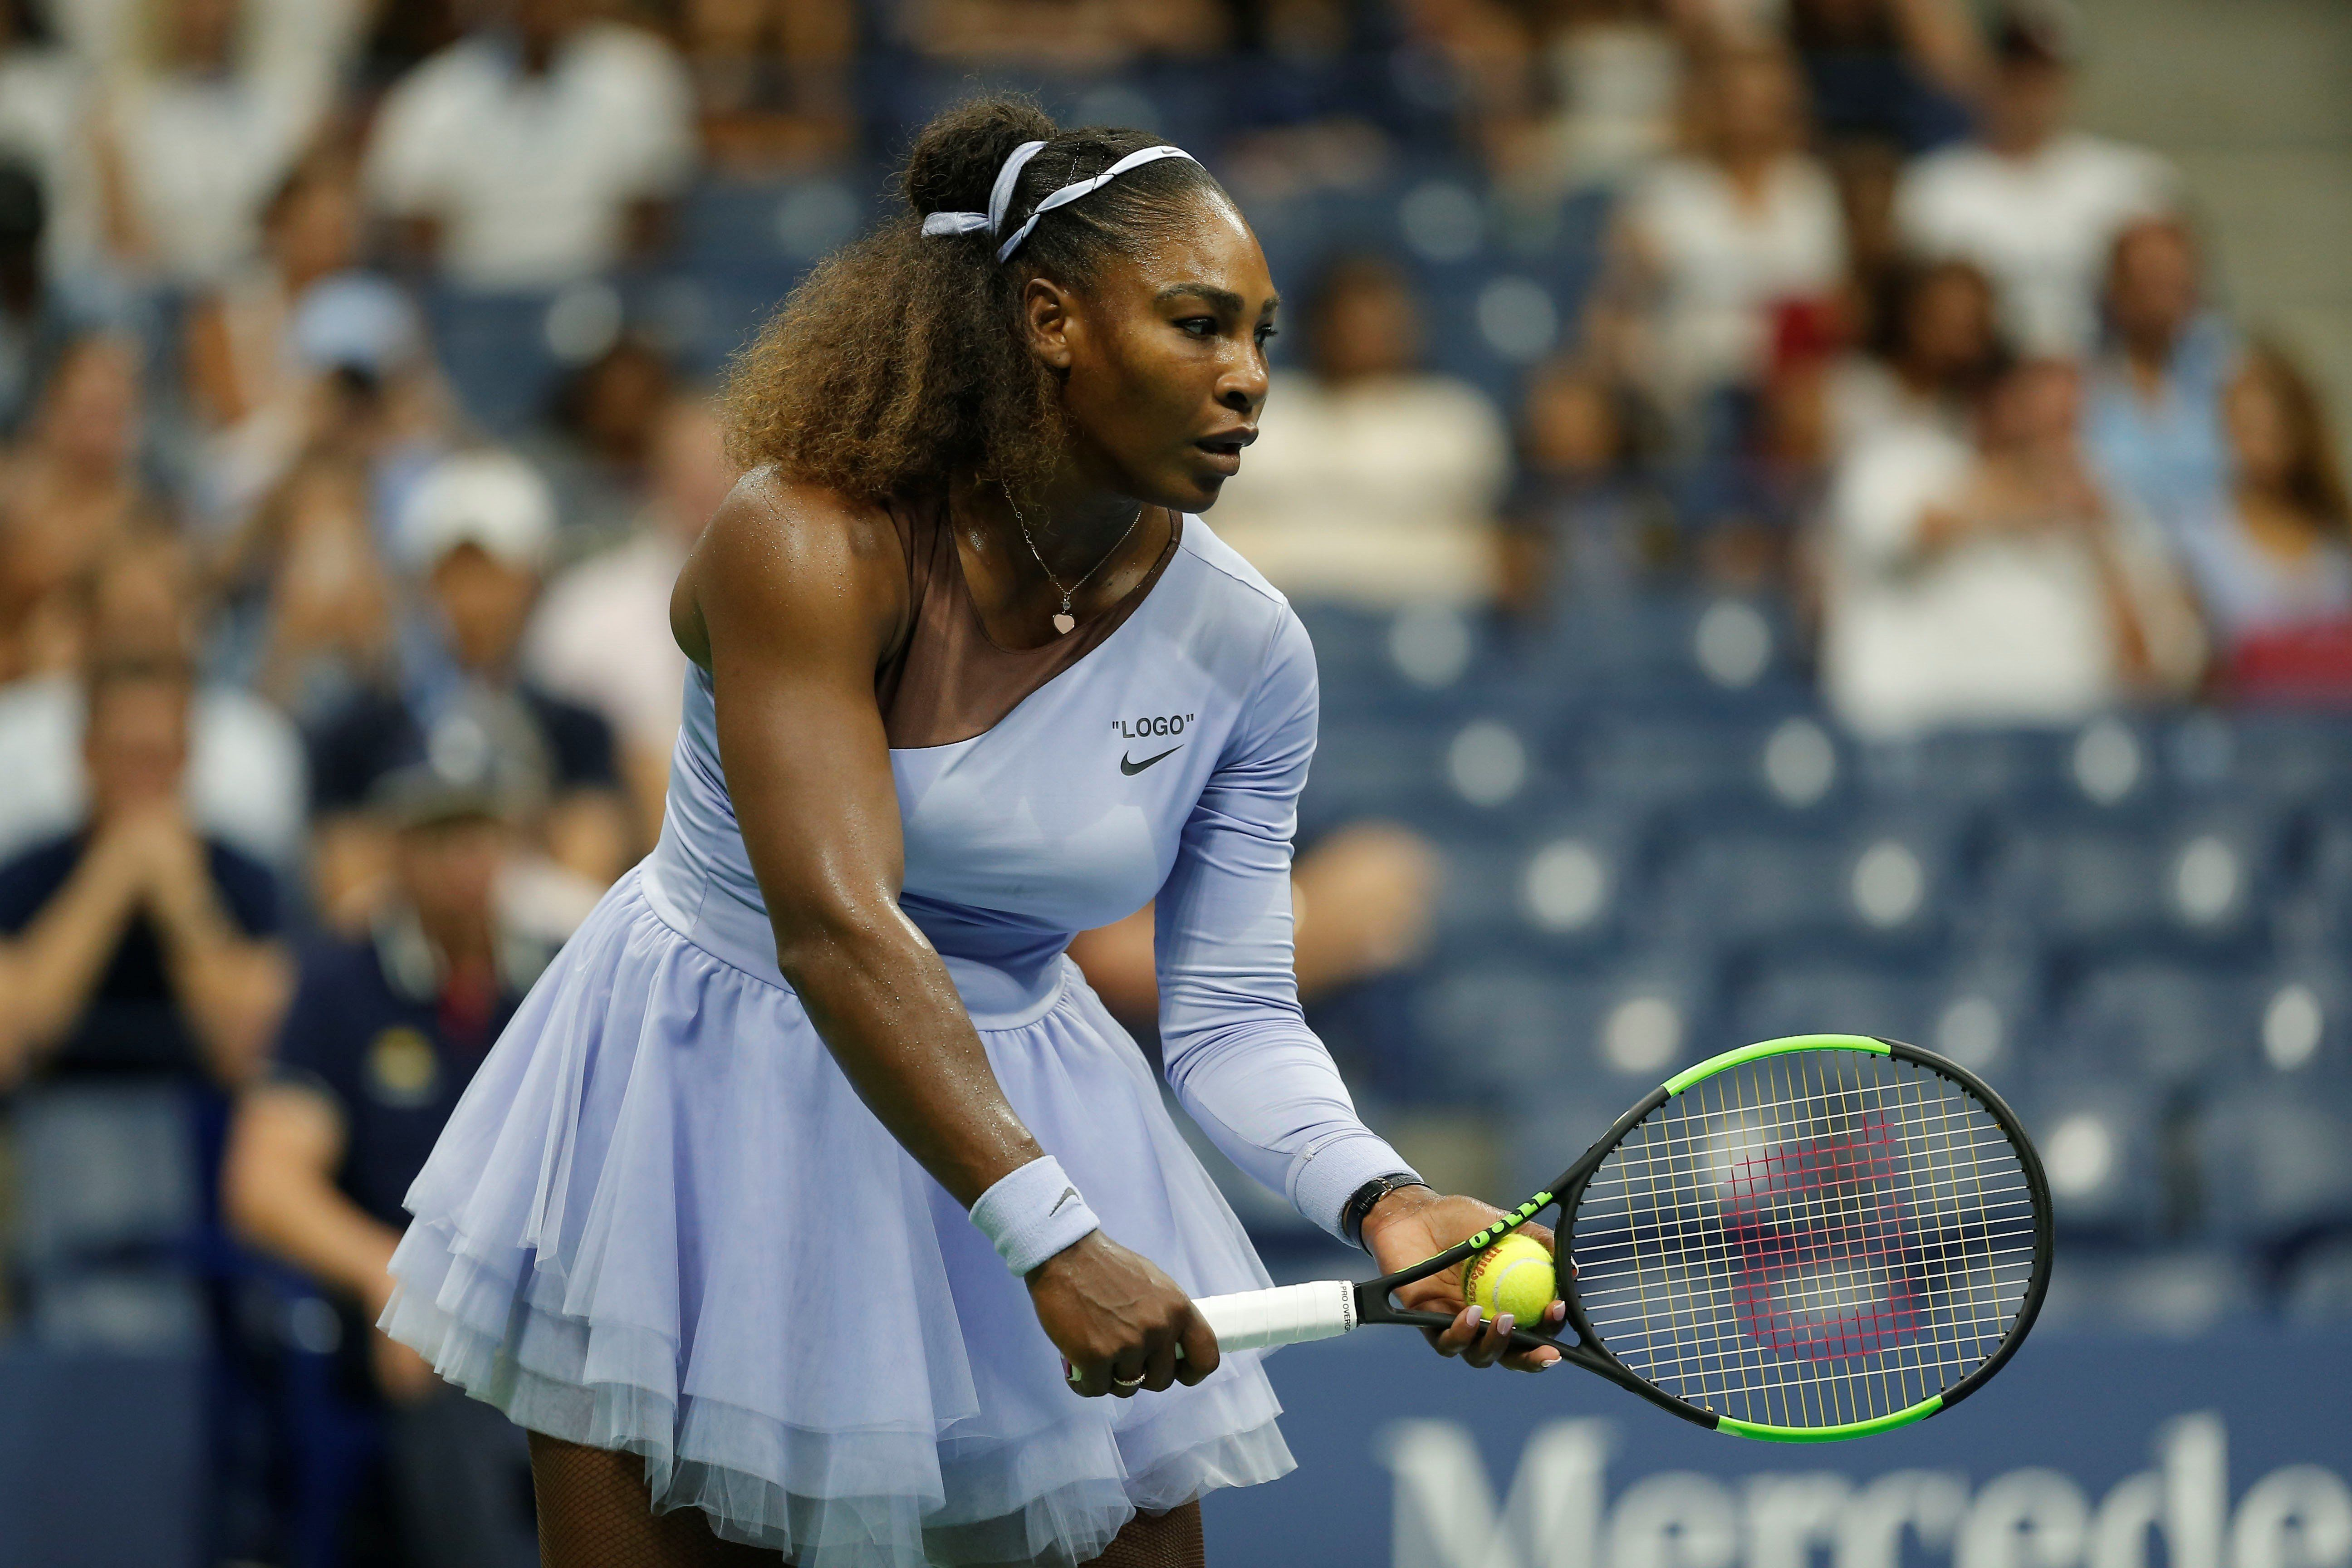 Watch Serena Williams journey from giving birth to U.S. Open